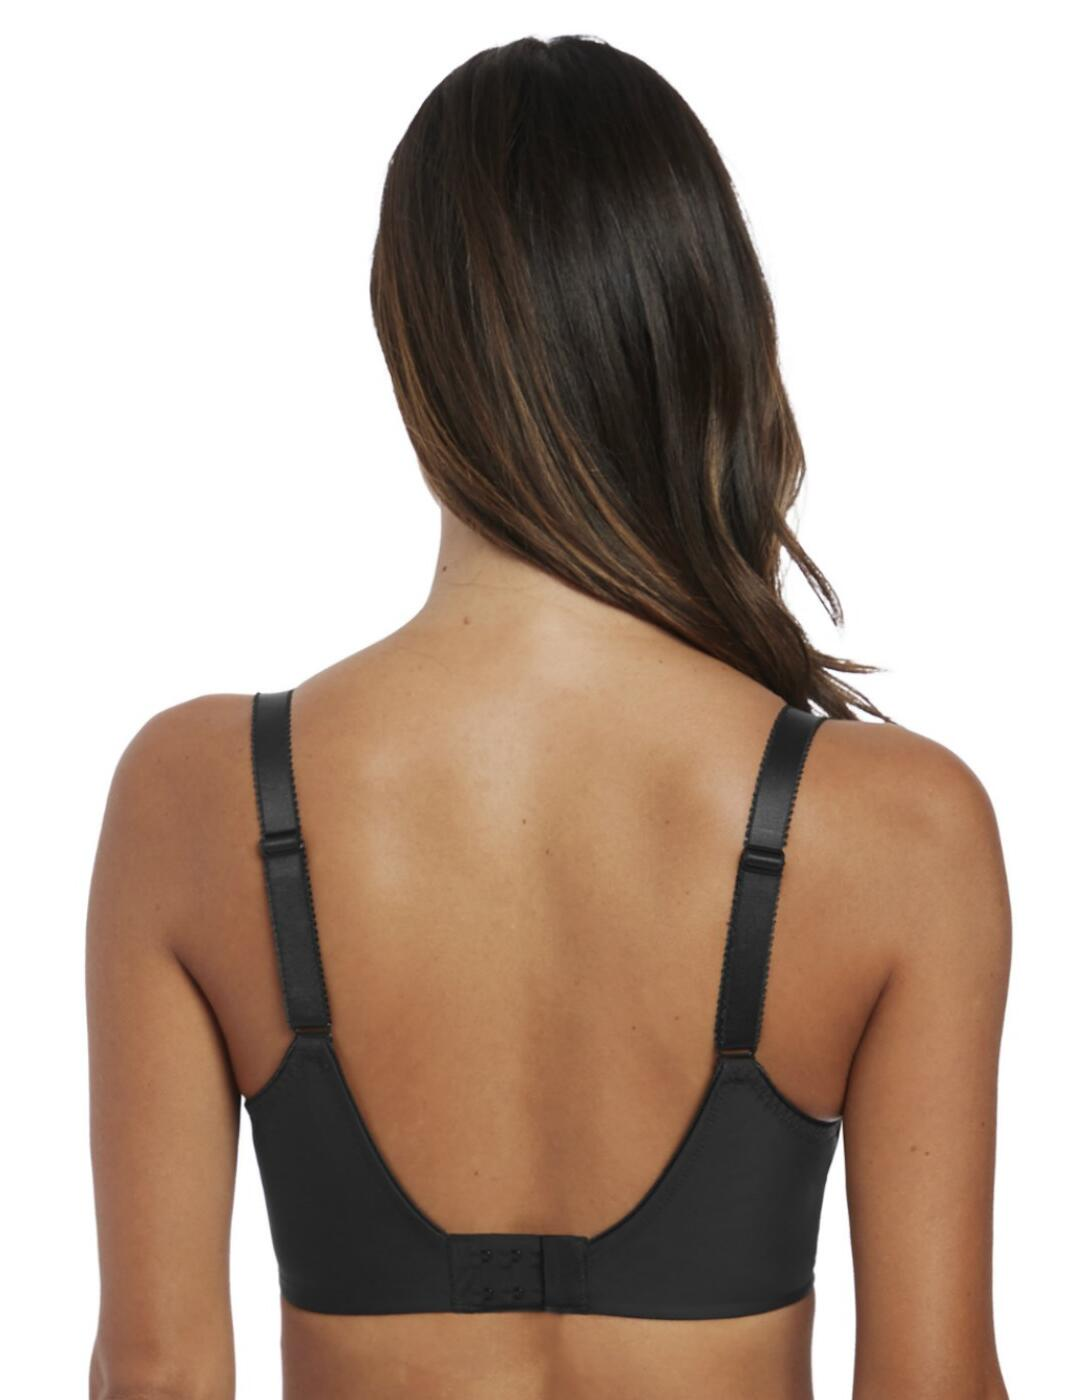 Fantasie-Illusion-Bra-Underwired-Side-Support-2982-Non-Padded-Supportive-Bra thumbnail 9